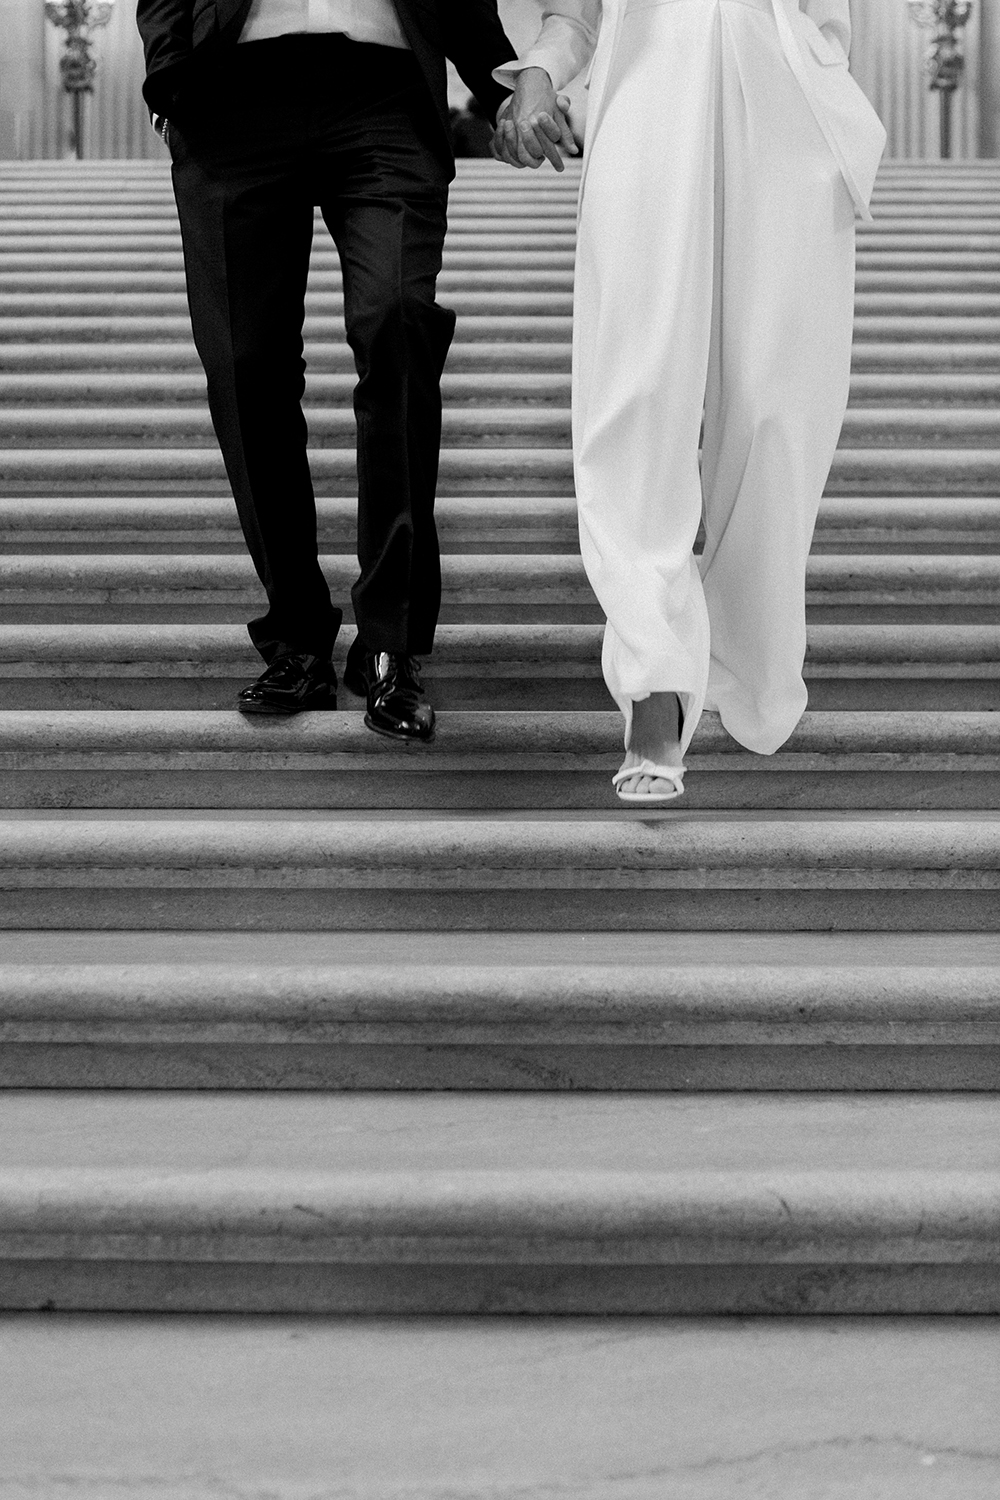 Classic portraits of bride and groom walking during their San Francisco City Hall wedding.